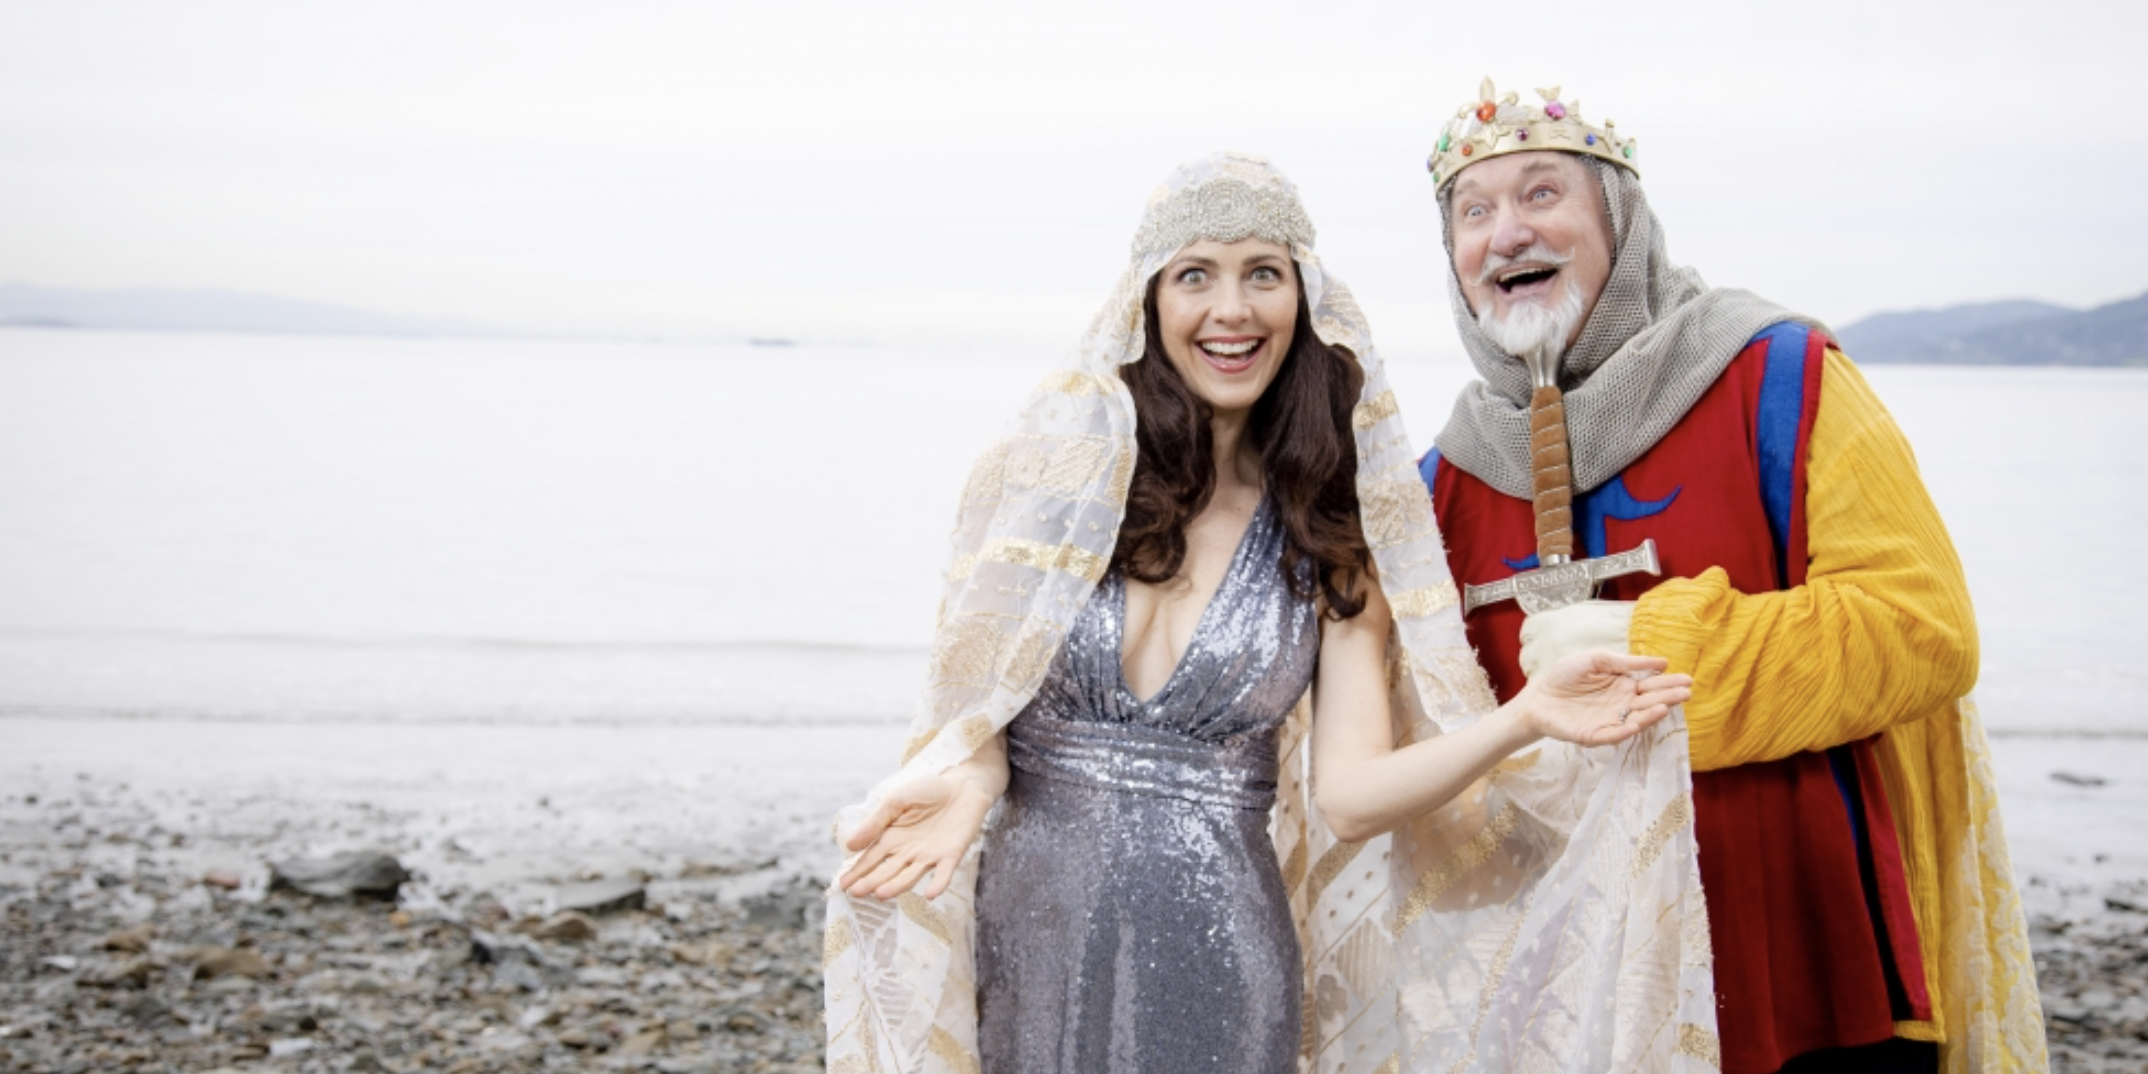 A Must See - I would recommend the play Spamalot by Monty Python, as performed by the Marin Shakespeare Company, to a teenage or adult audience, as certain scenes are not appropriate for small children. I attended the preview performance on the 27th, and found it very amusing.